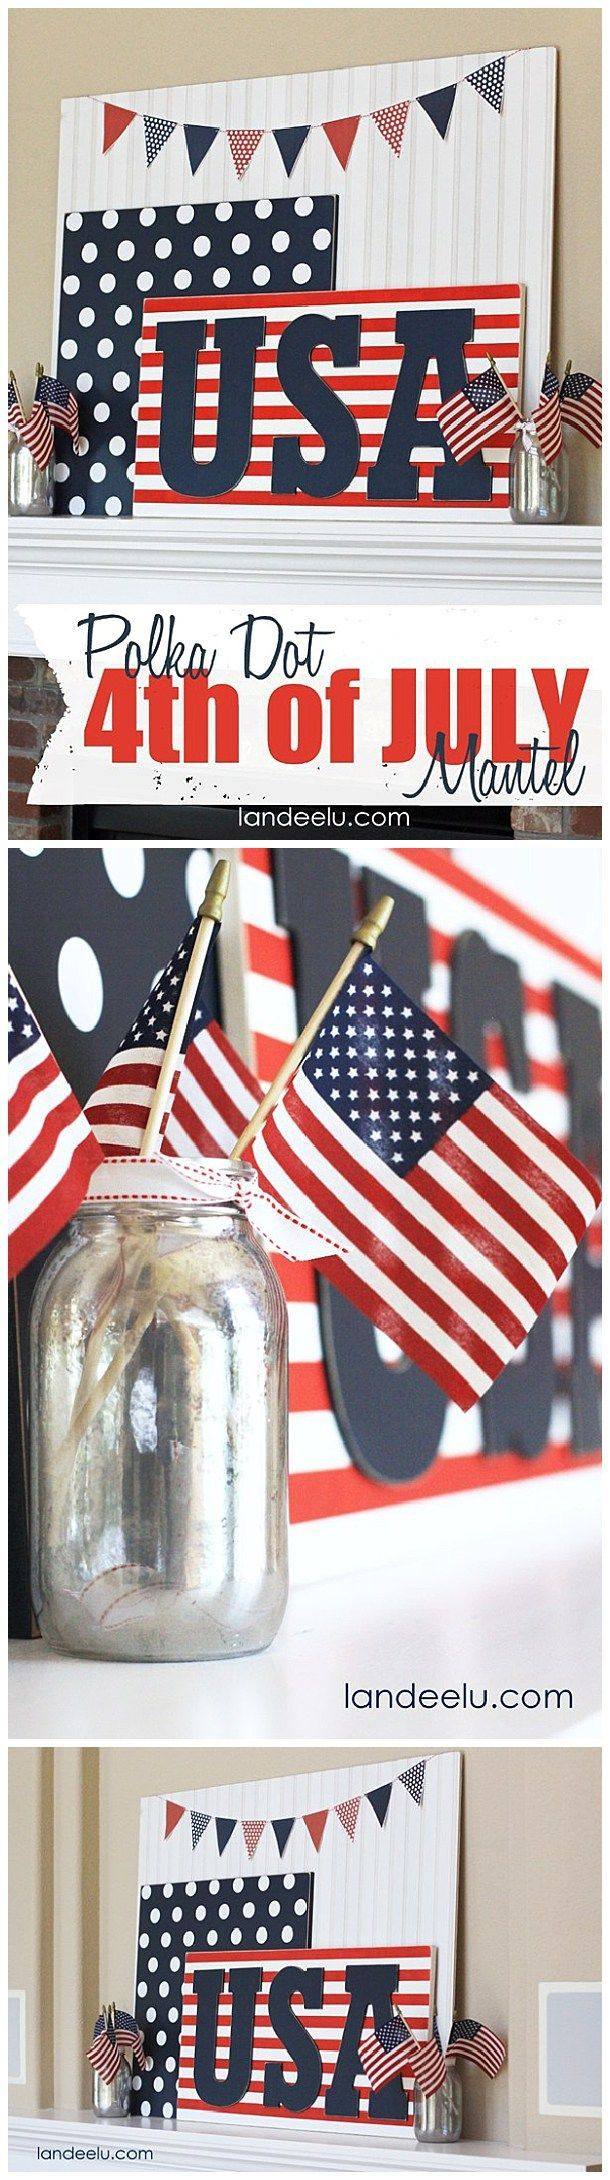 Coloring pages for dots for 4 of july - Polka Dot 4th Of July Mantel